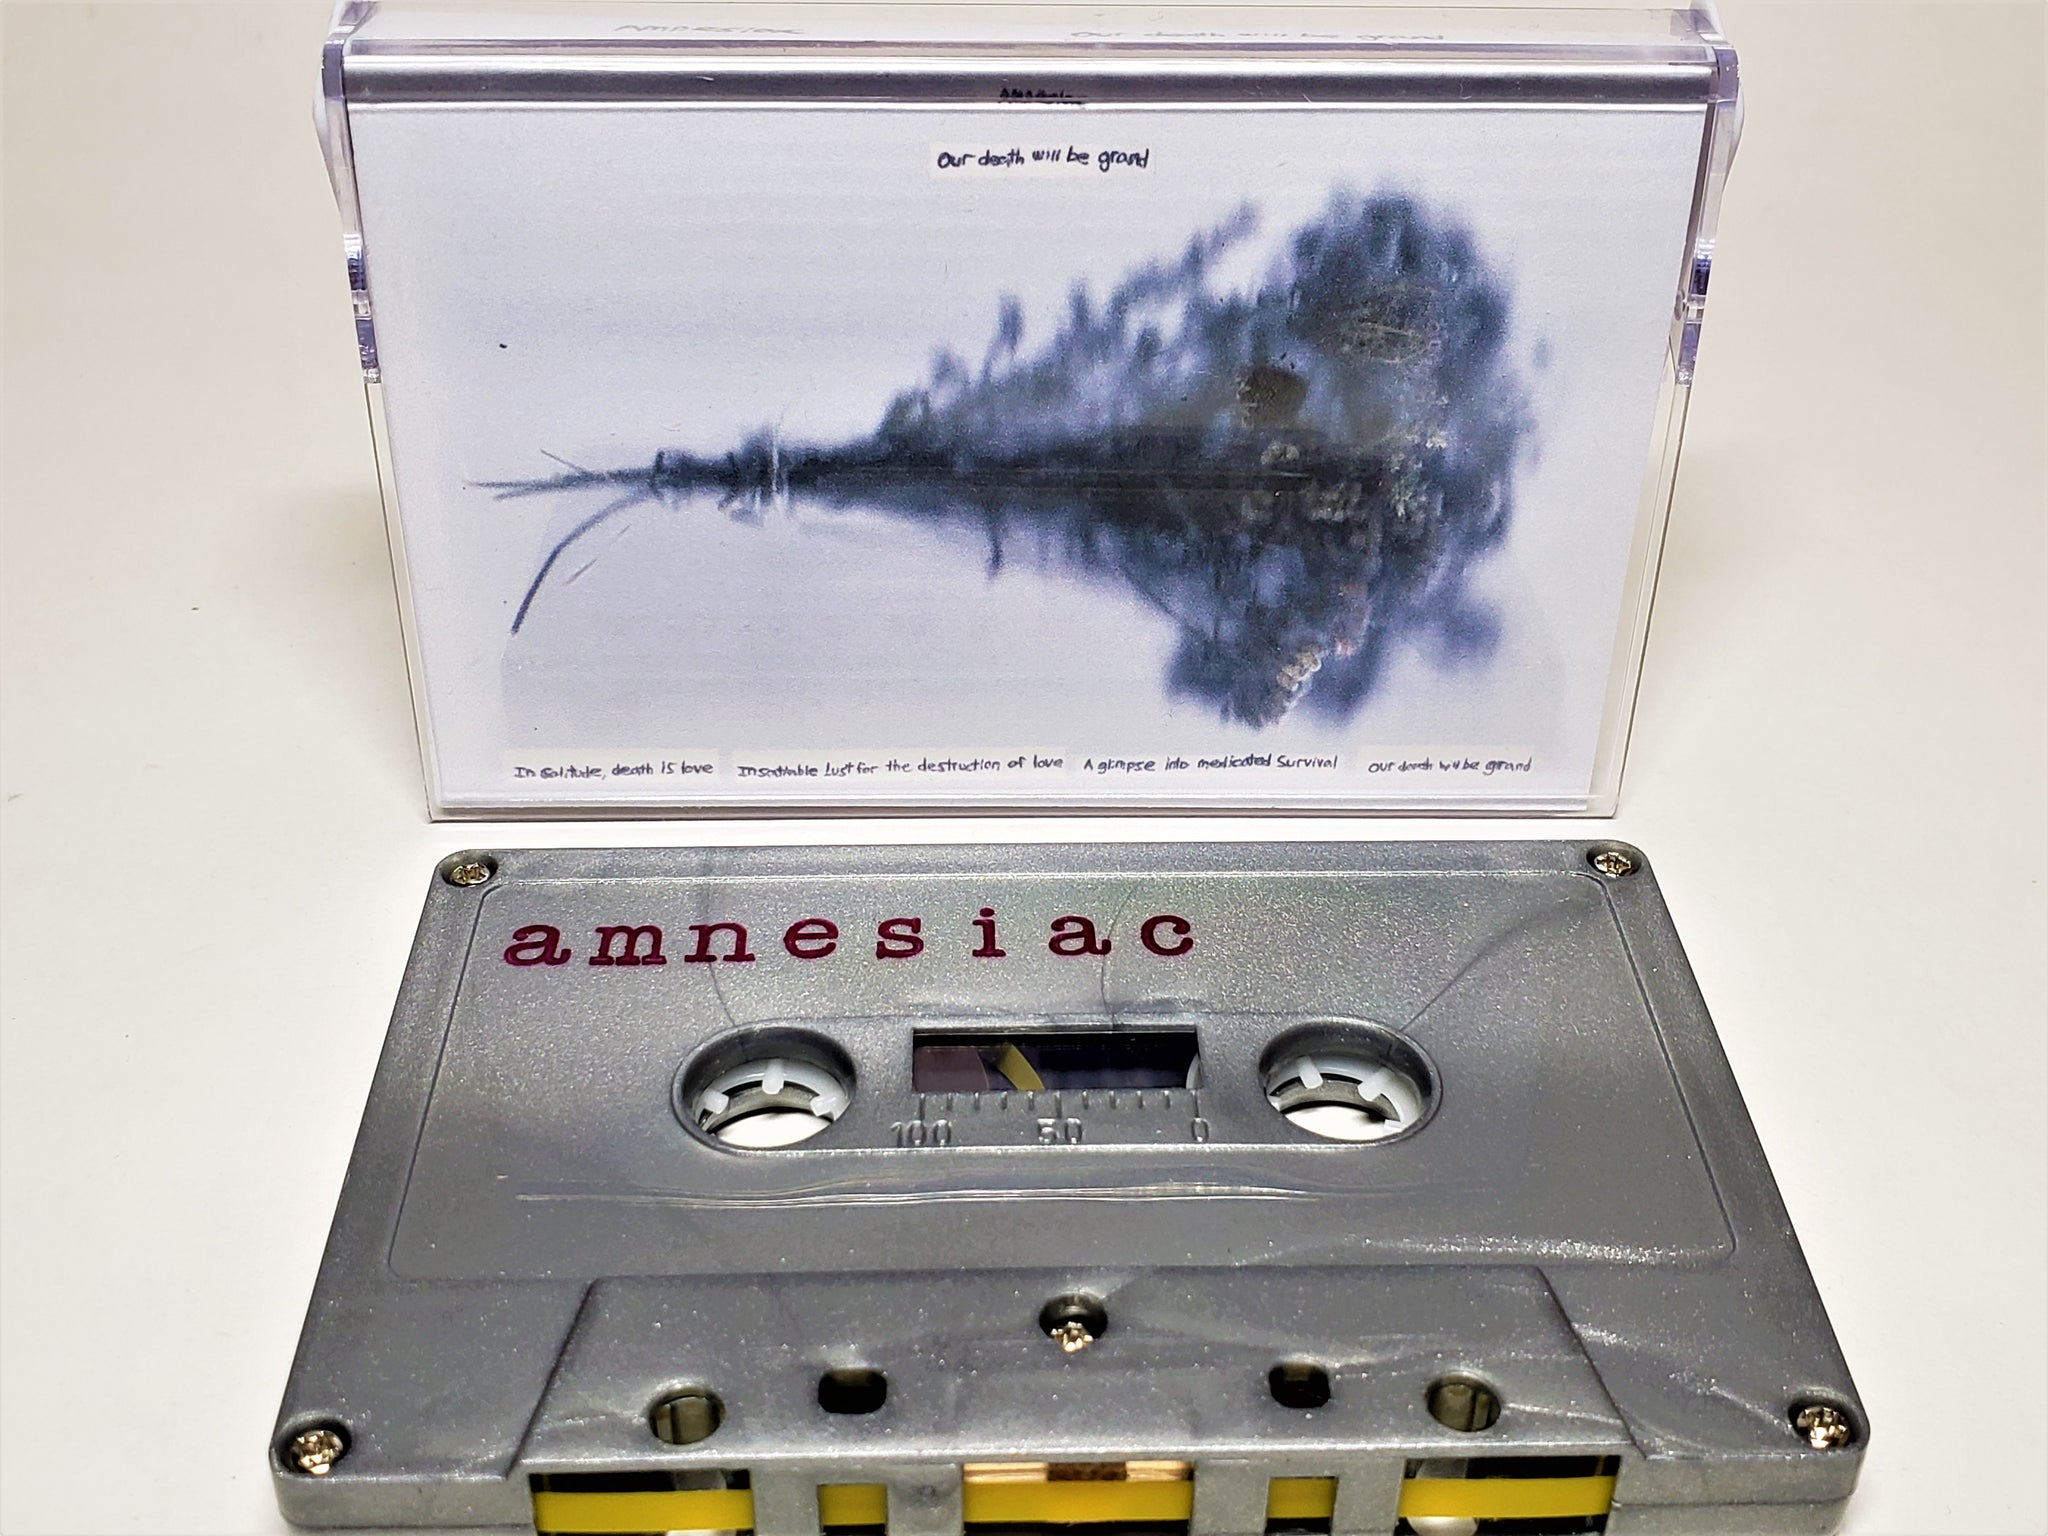 AMNESIAC - Our Death Will Be Grand (cassette)